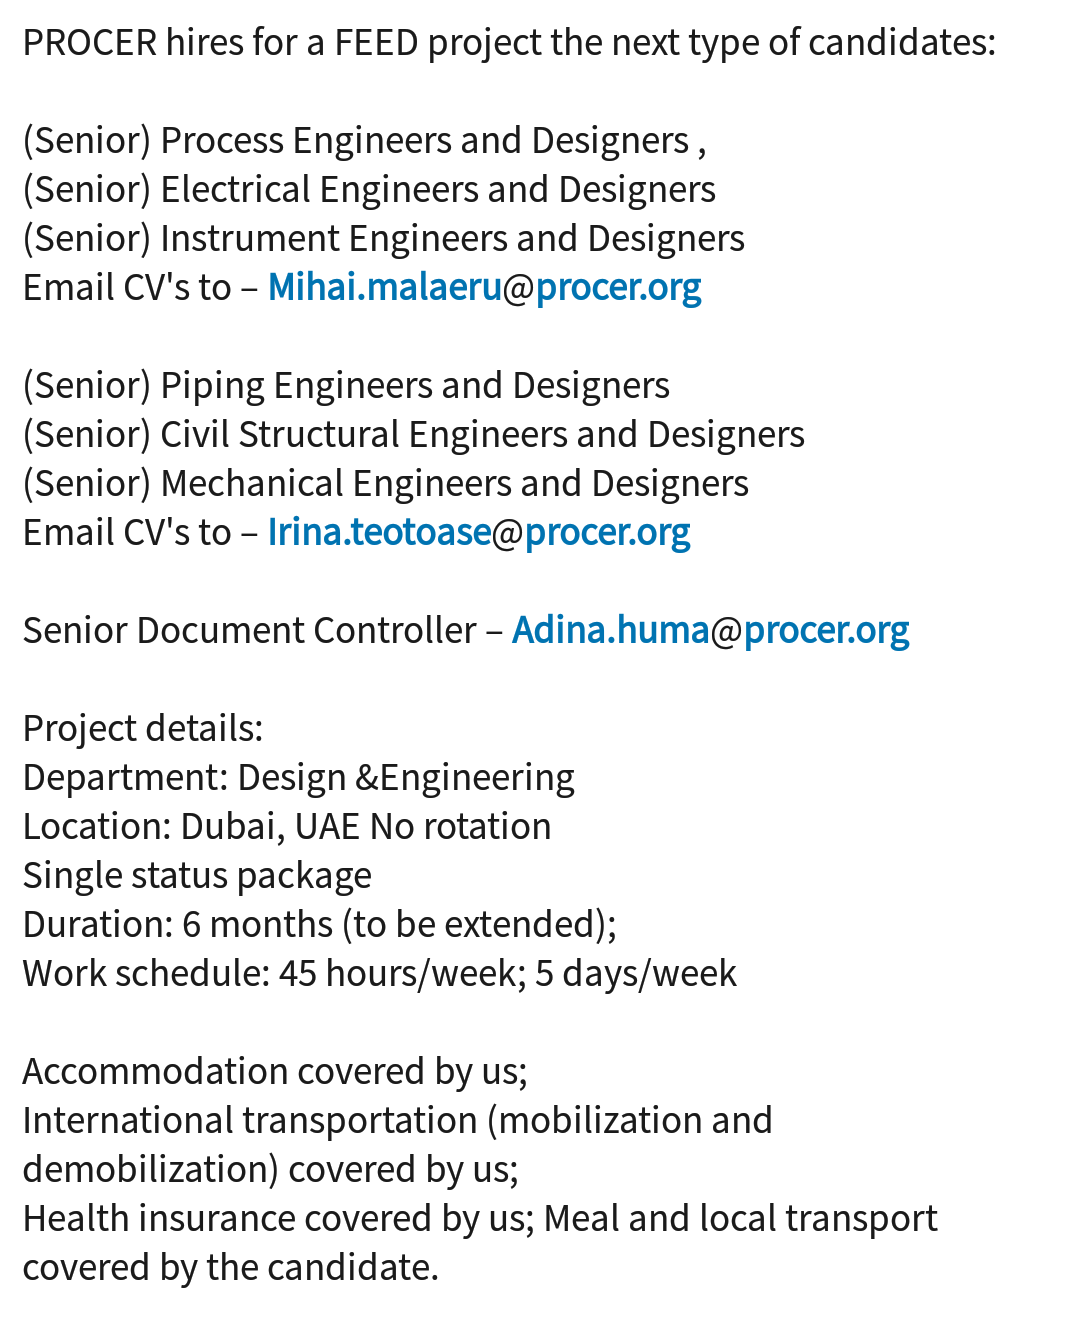 Oil And Gas Jobs Electrical Mechanical Instrument Process Civil Piping Engineers And Designers Required By Procer For Their Next Project